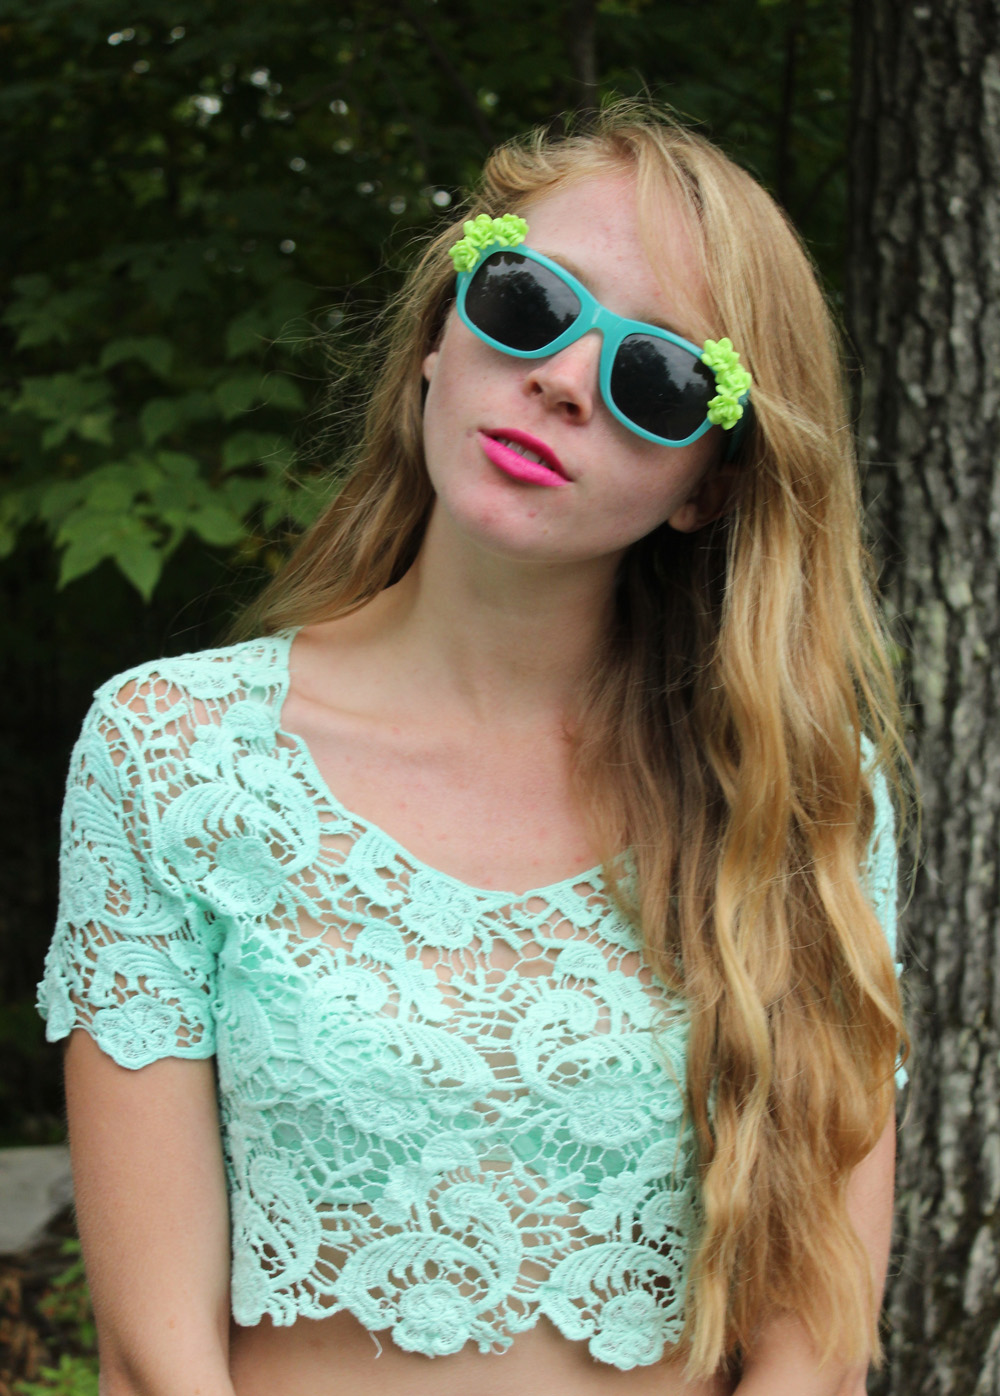 mint shirt lace and sunglasses